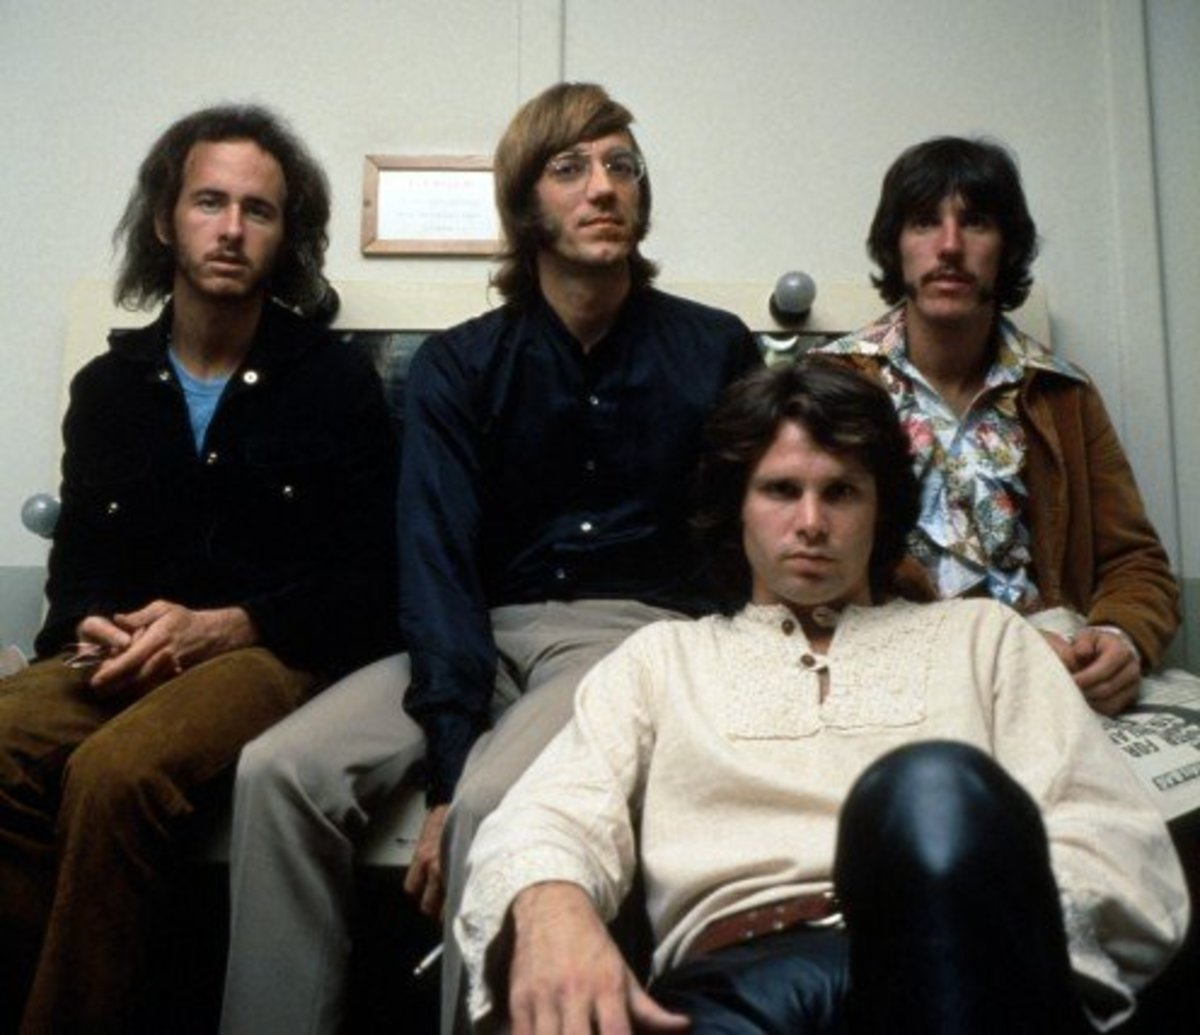 Robbie Krieger (upper left) with the Doors